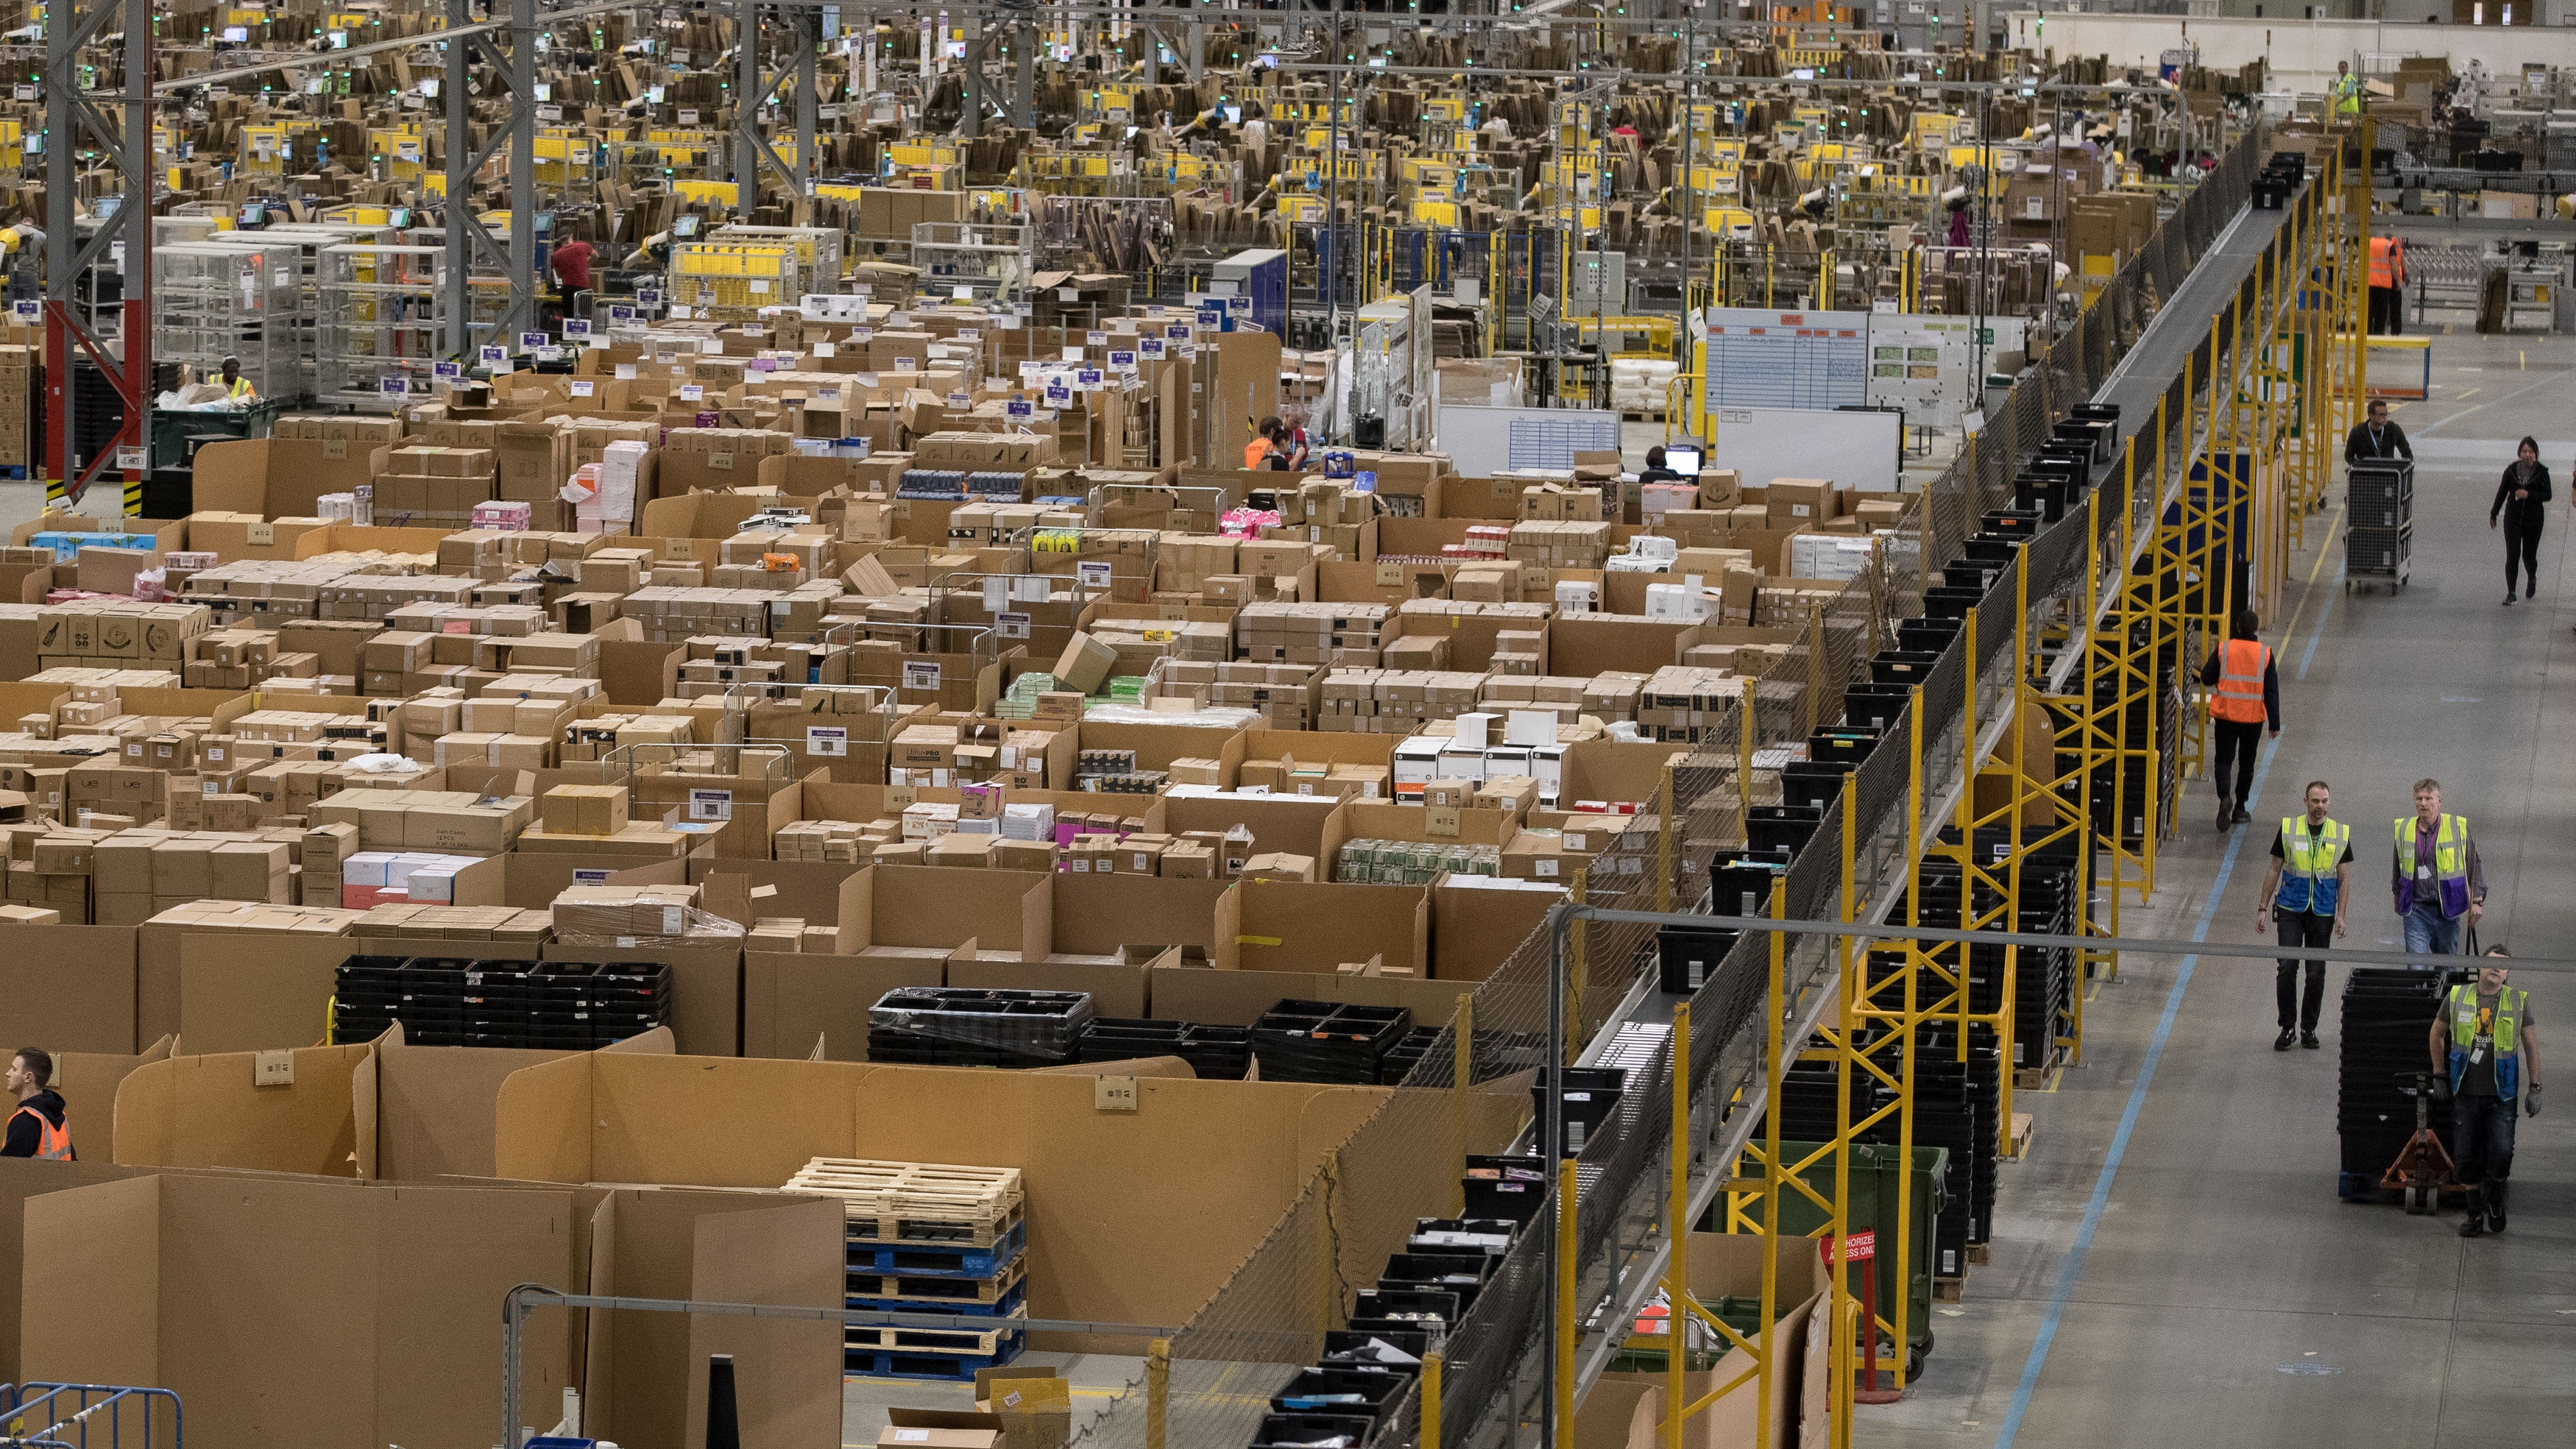 FedEx, UPS Shares Fall As Amazon Reportedly Will Launch Mail Delivery Service